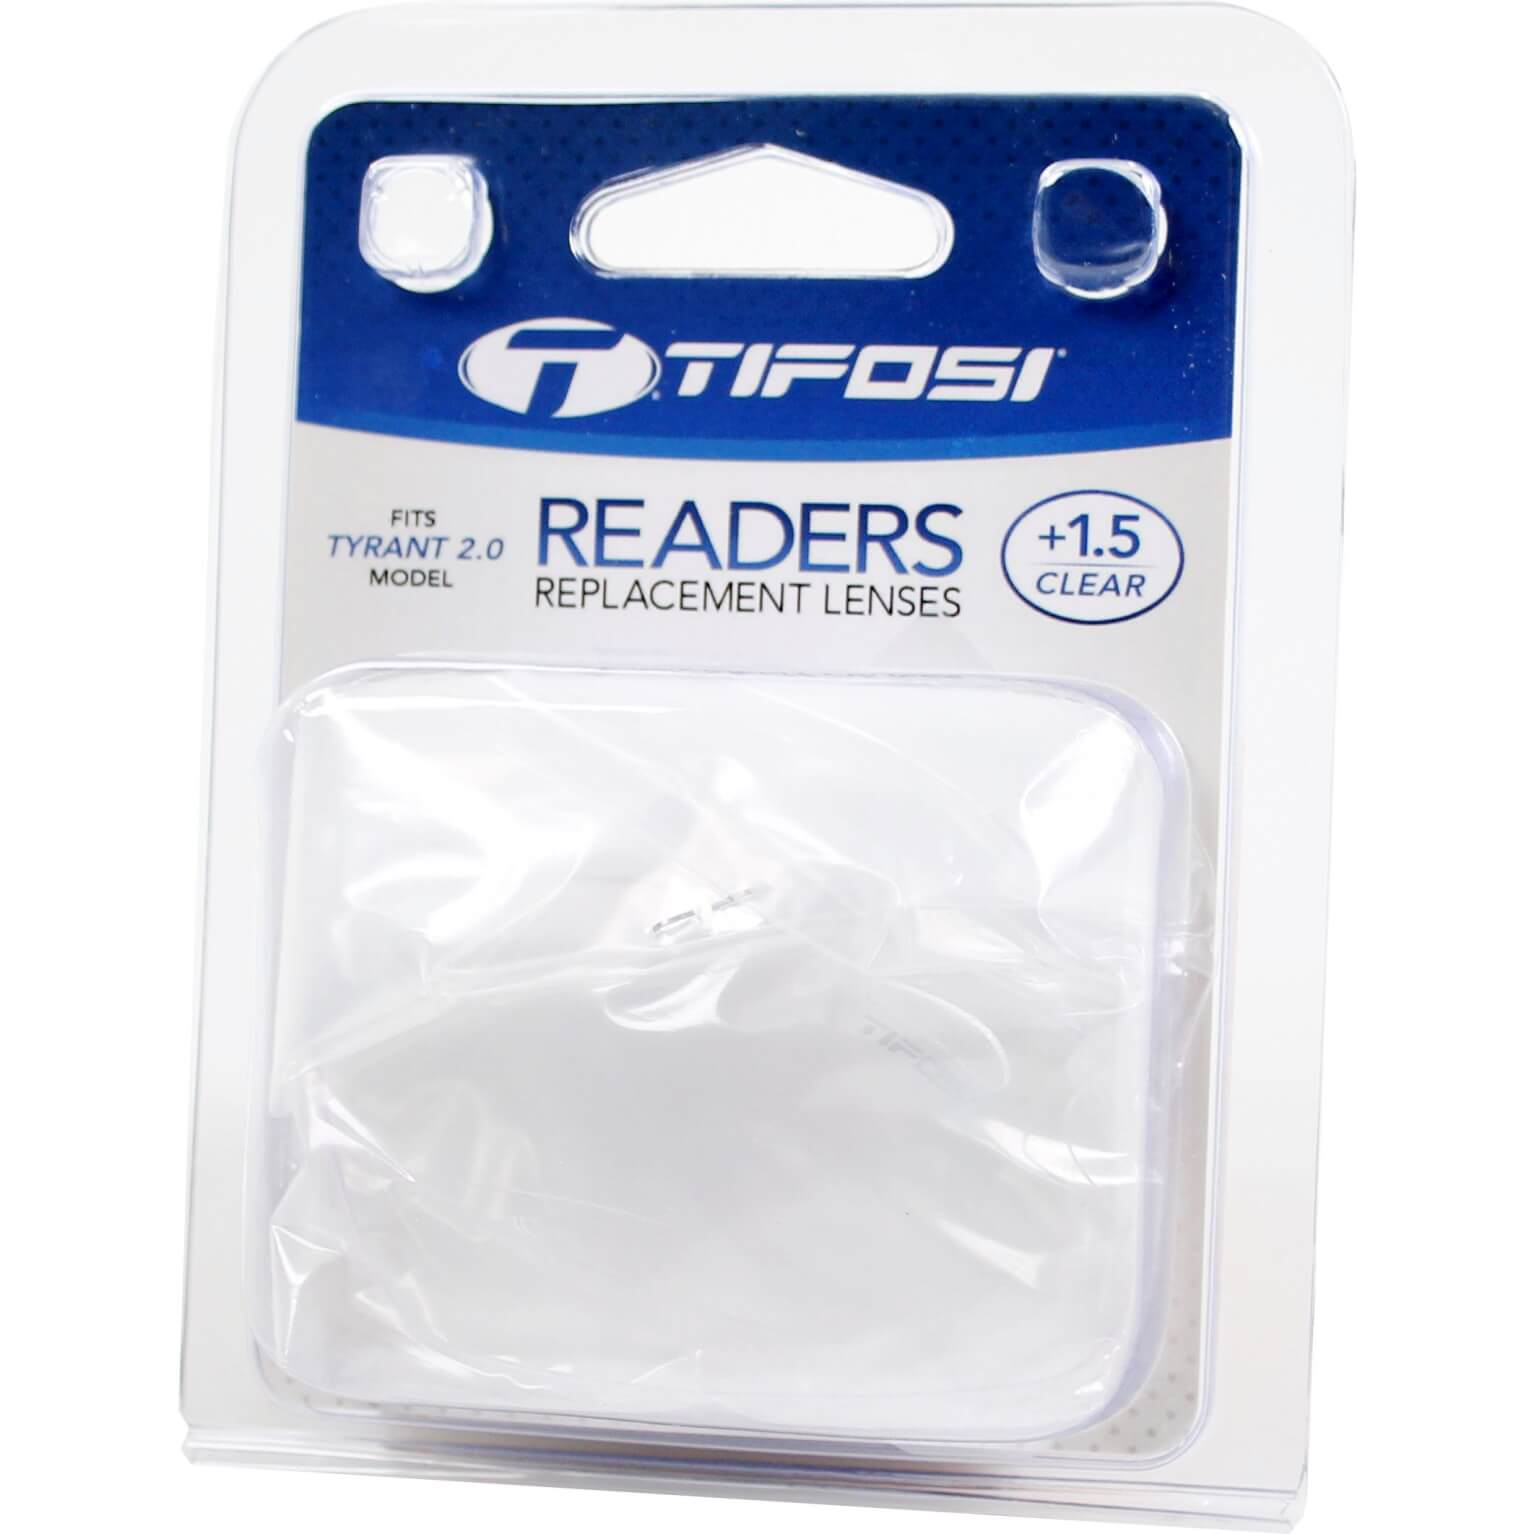 Tifosi Lens Reader Transparent +1.5 For Tyrant